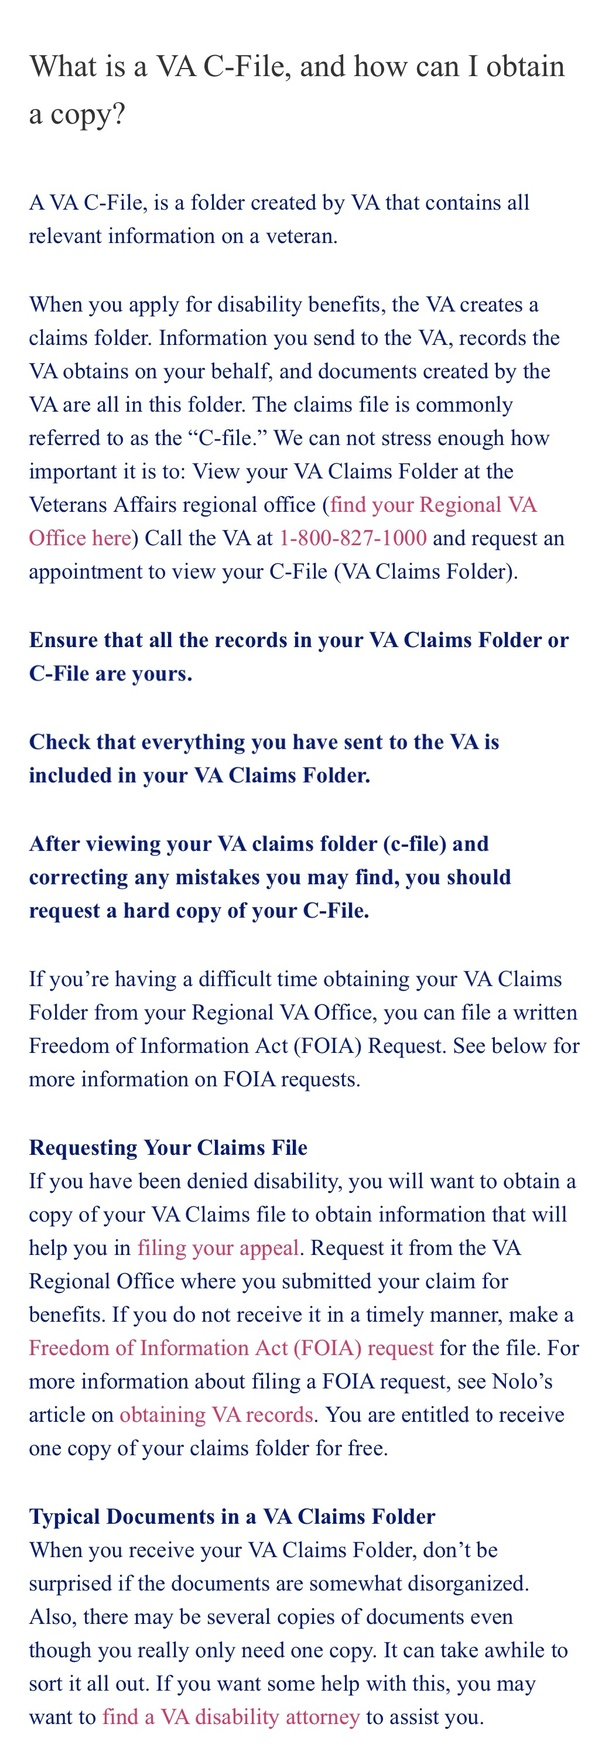 What is a veterans C-File? - Quora